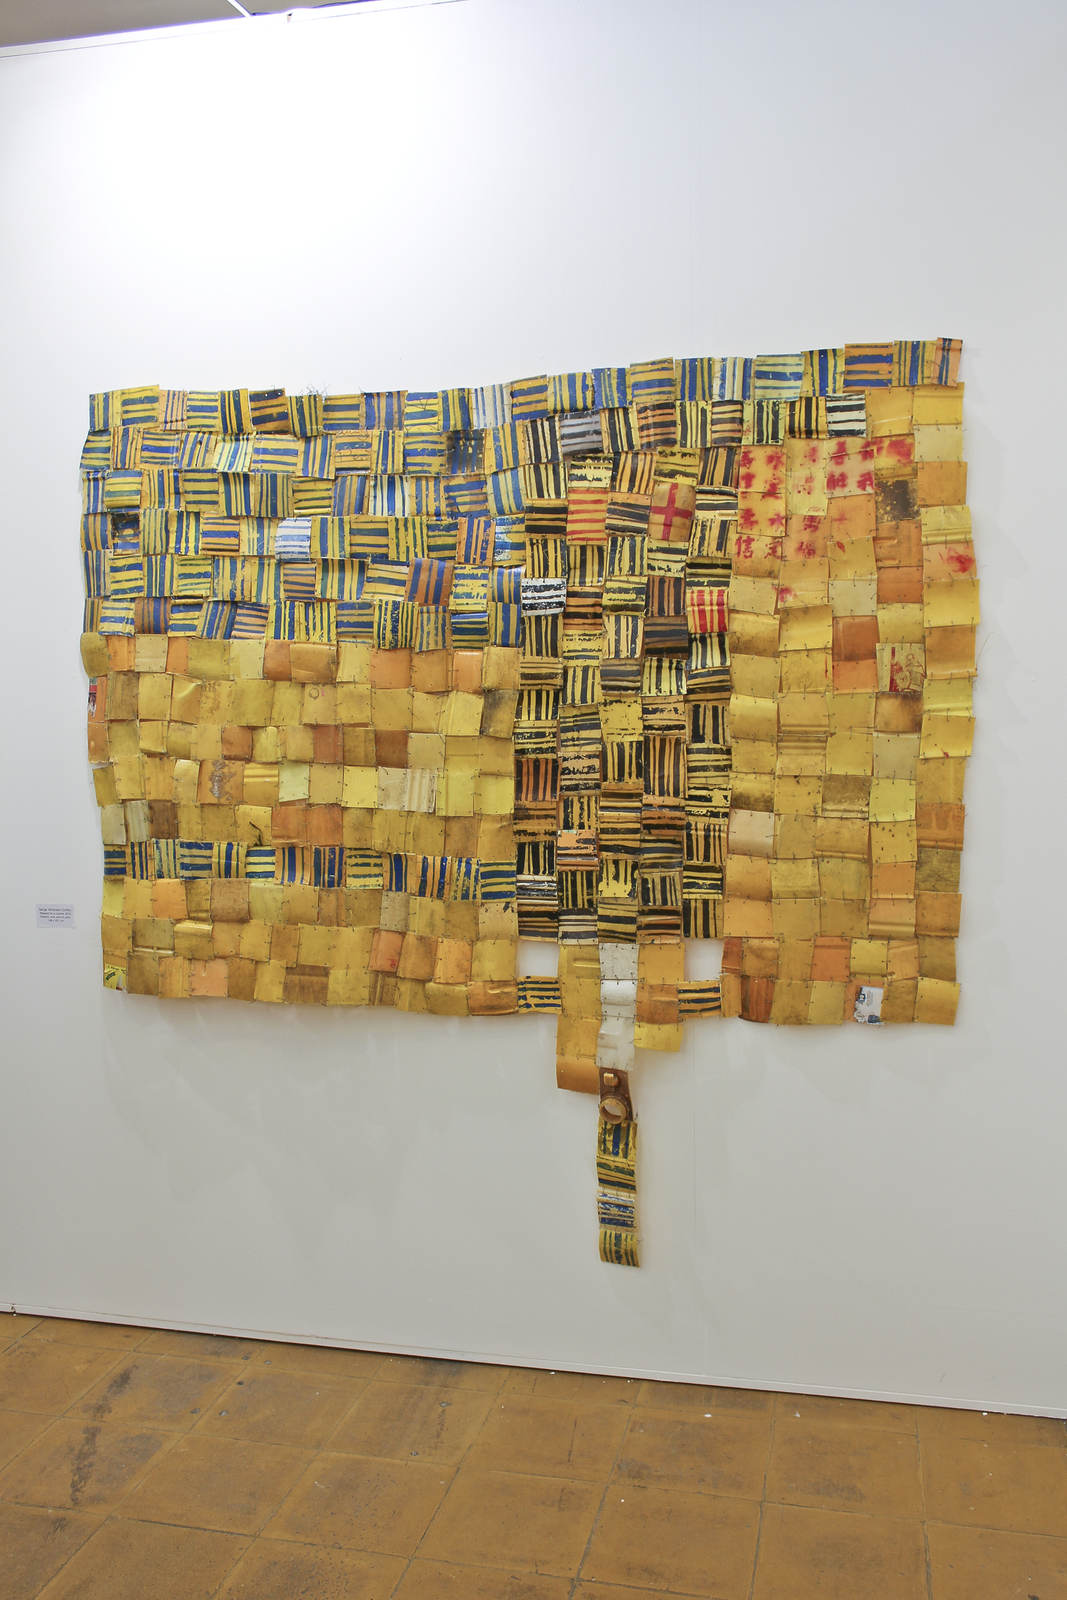 Serge Attukwei Clottery at GNYP Gallery, Berlin 02